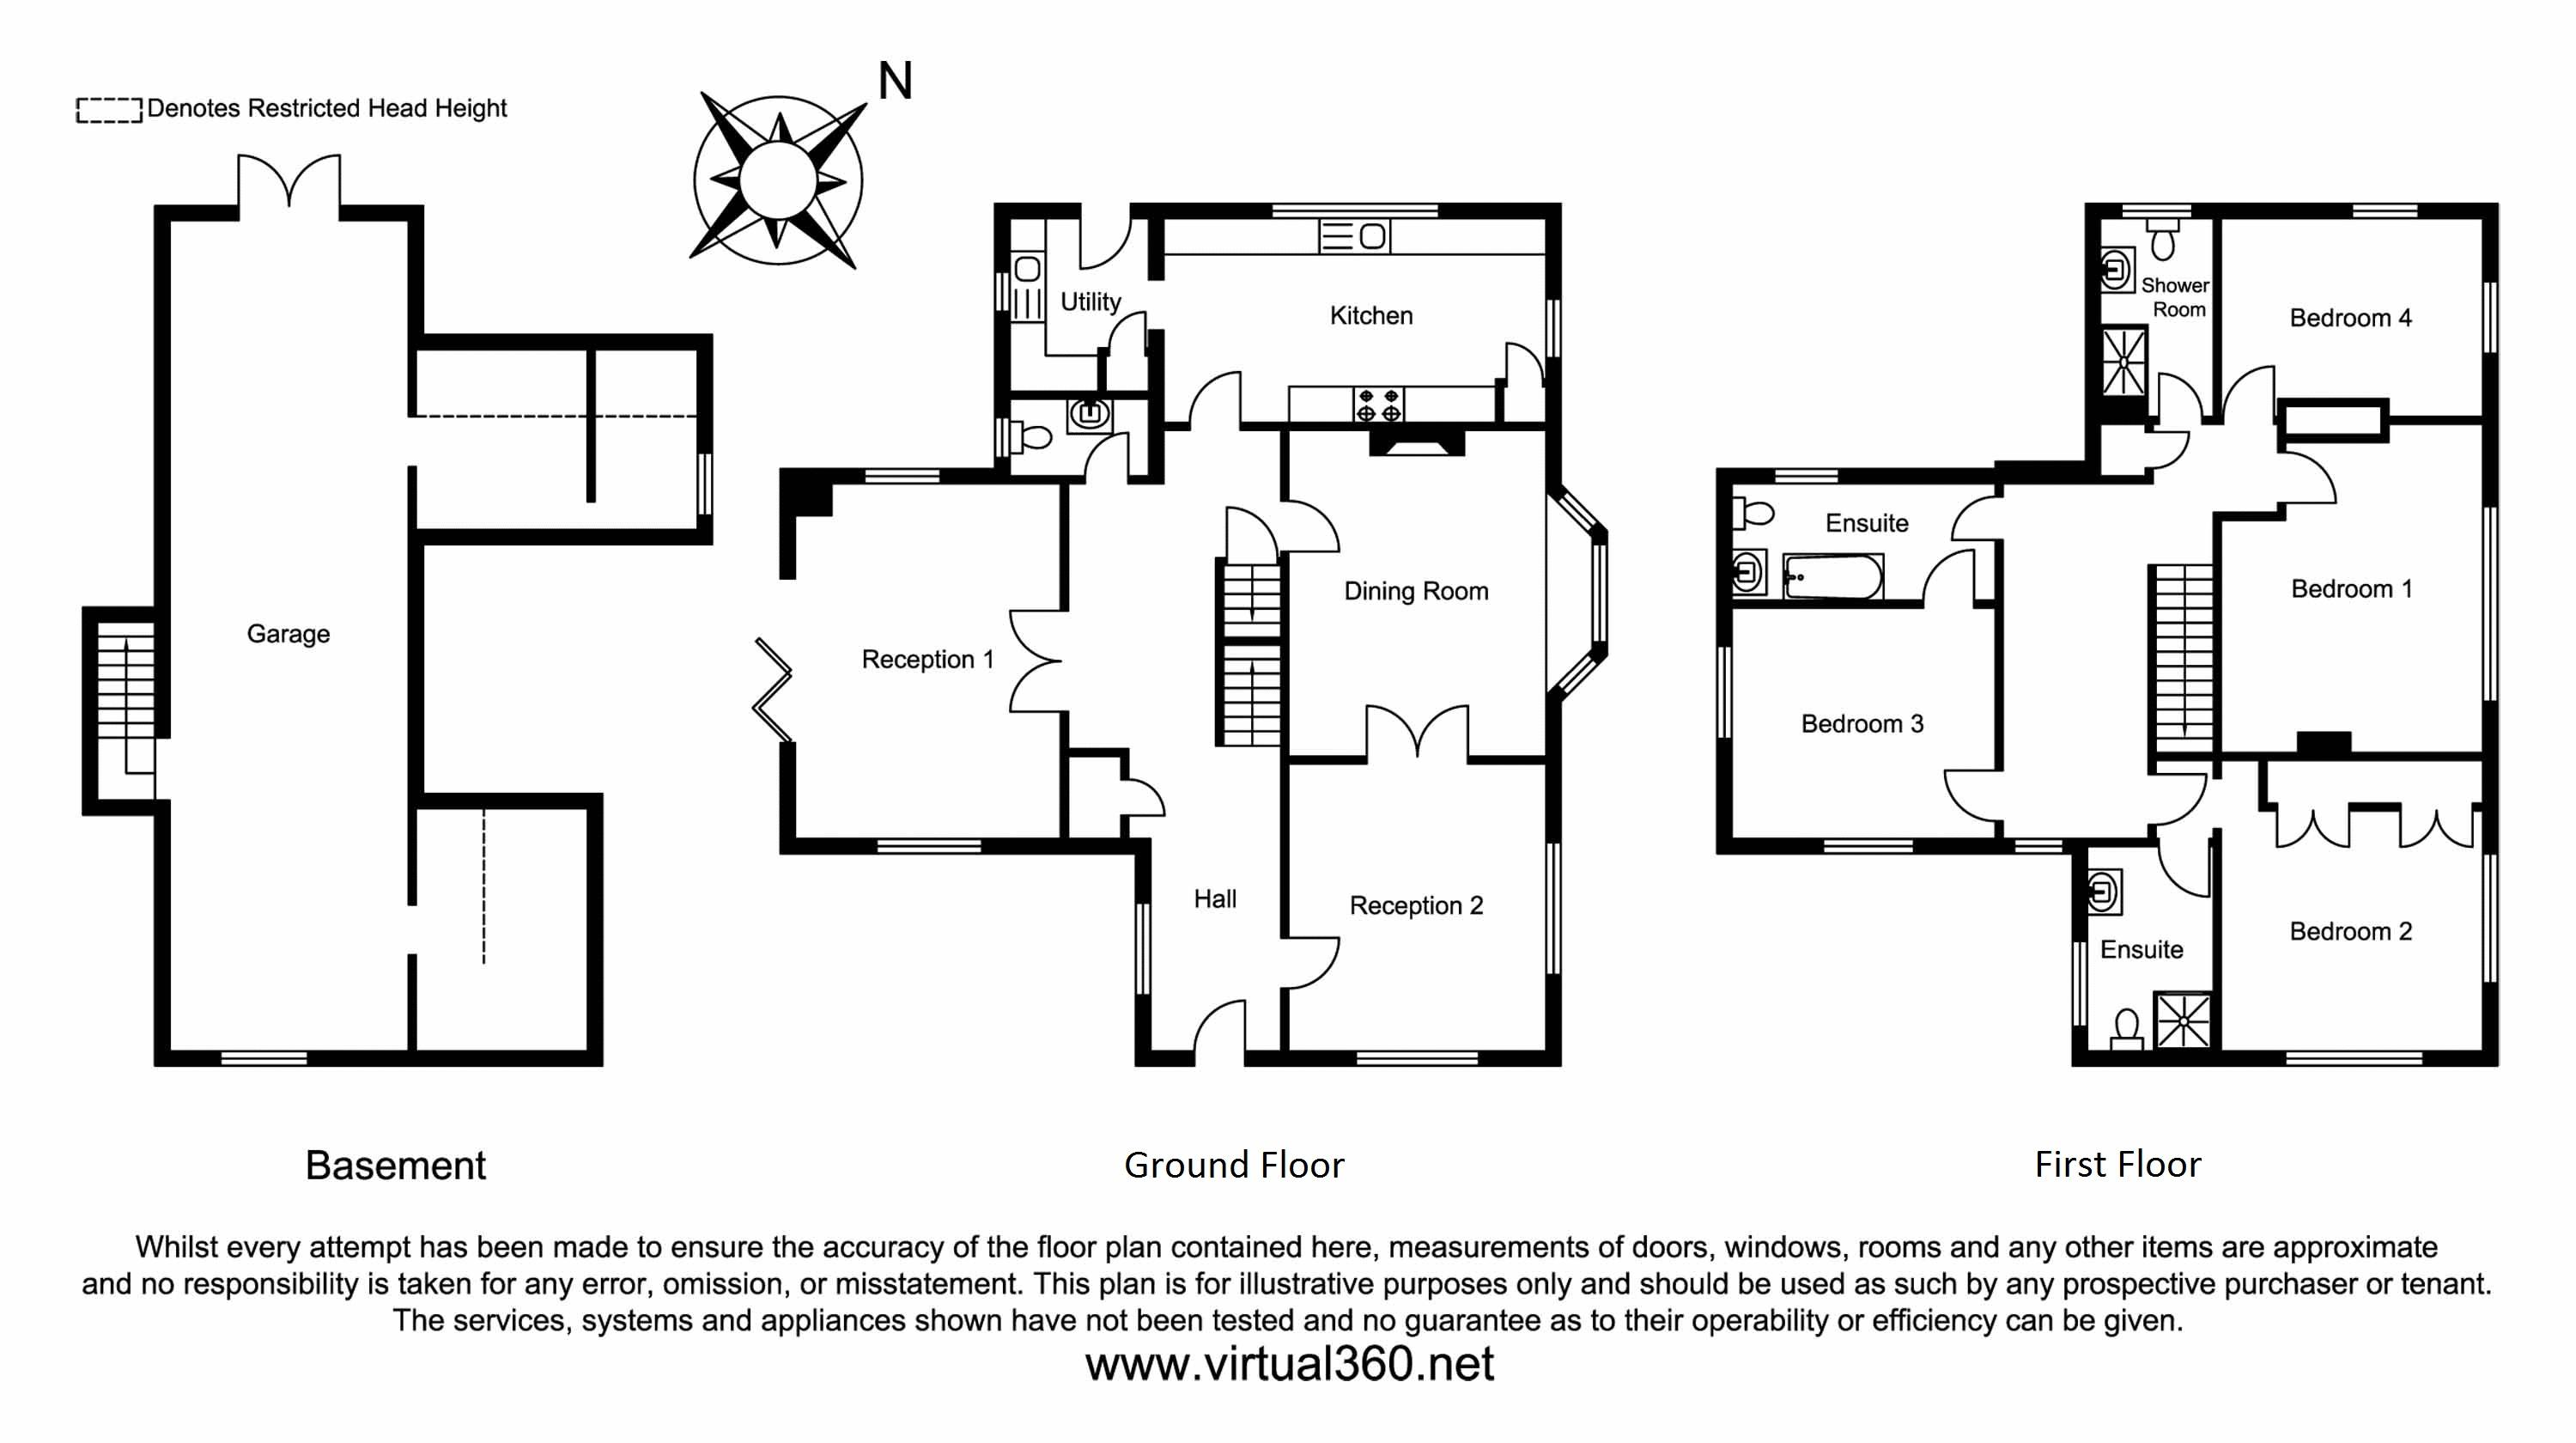 School Lane, Buxton floor plan